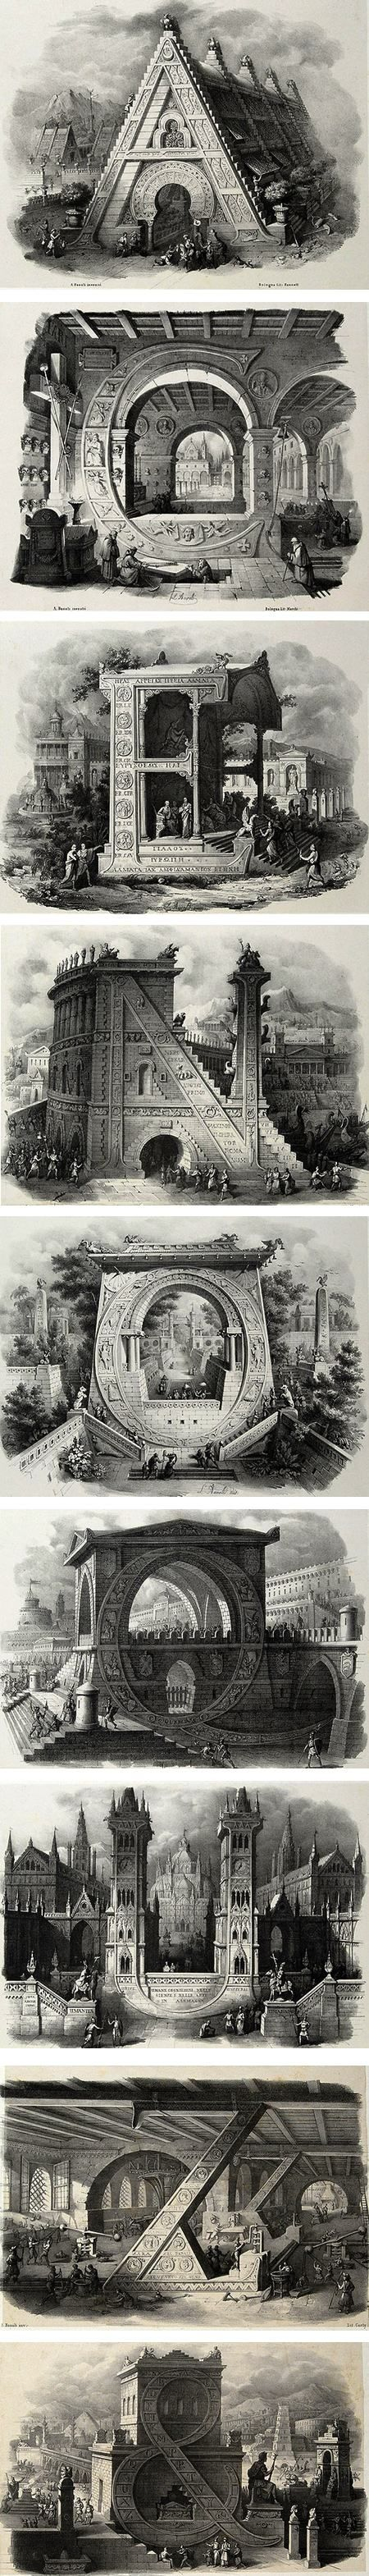 Architectural Letters: Alphabet, Letters And Architecture On Pinterest